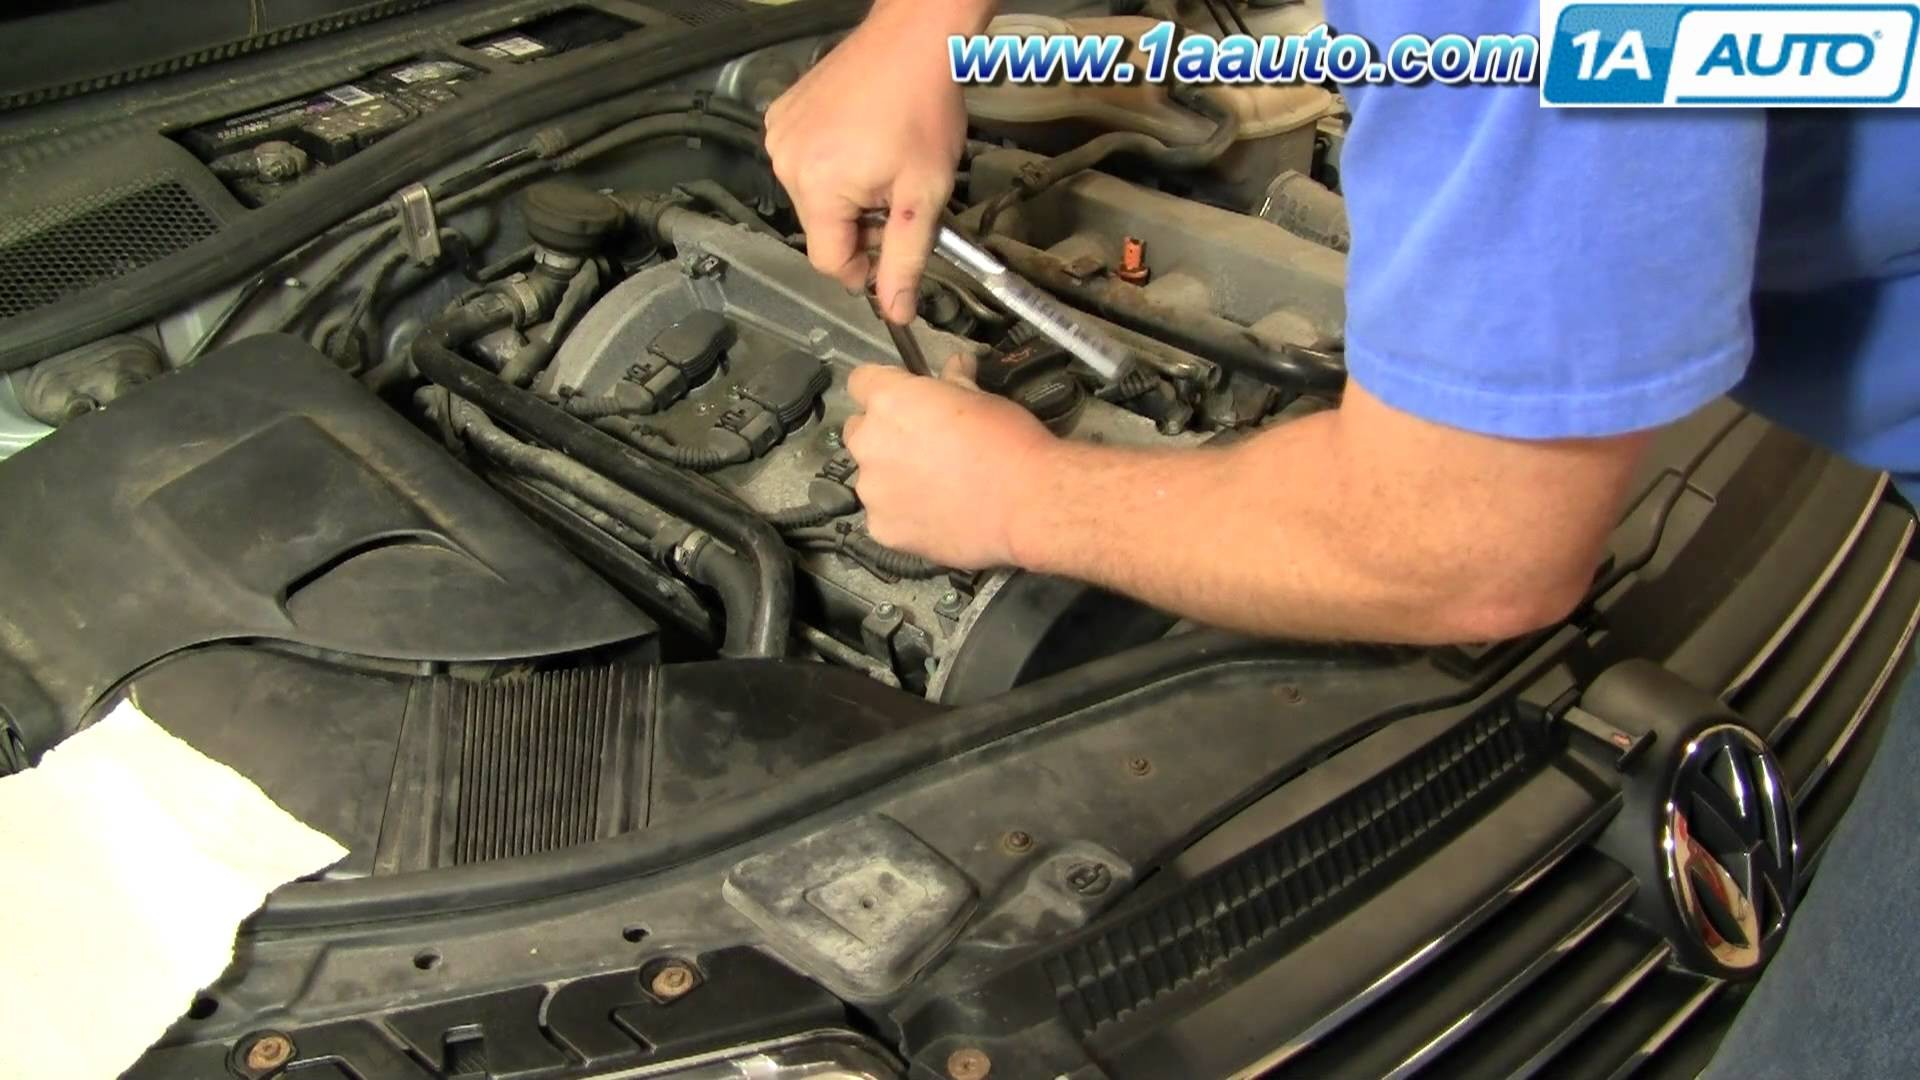 Service Manual How To Replace Spark Plugs On A 1999